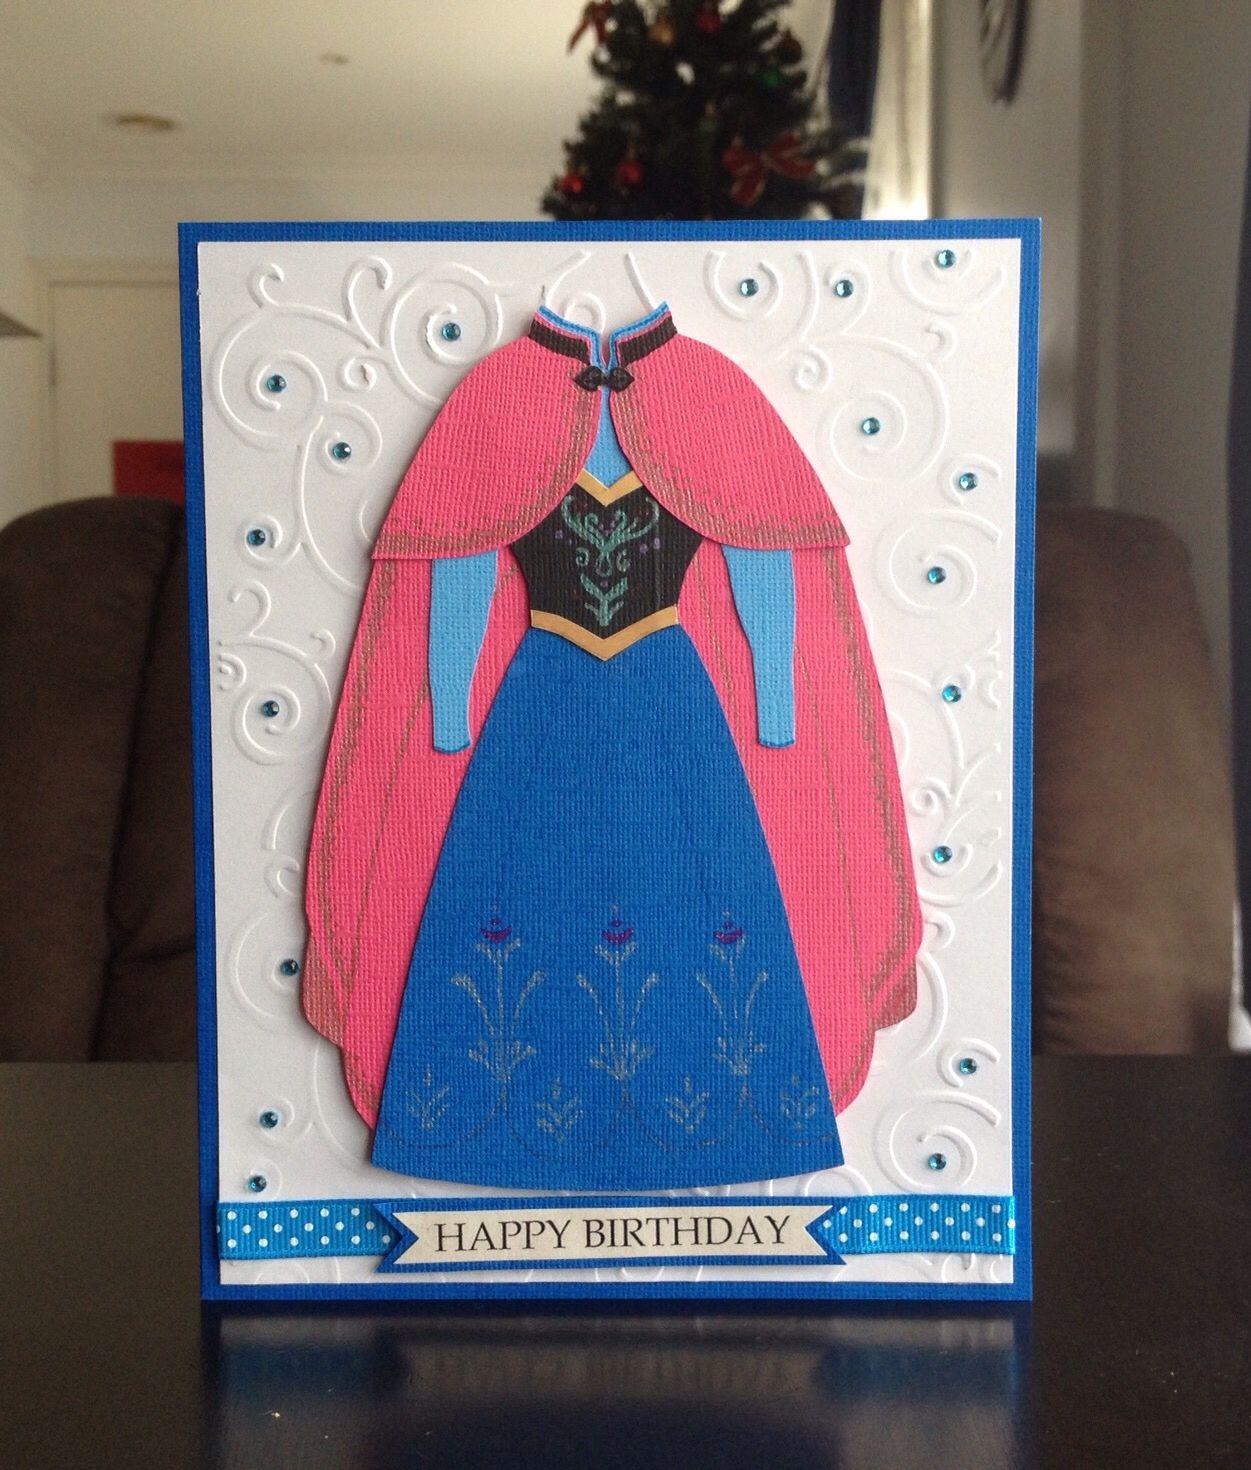 Frozen Theme Birthday Card Princess Anna by Graciekofoed – Themed Birthday Cards